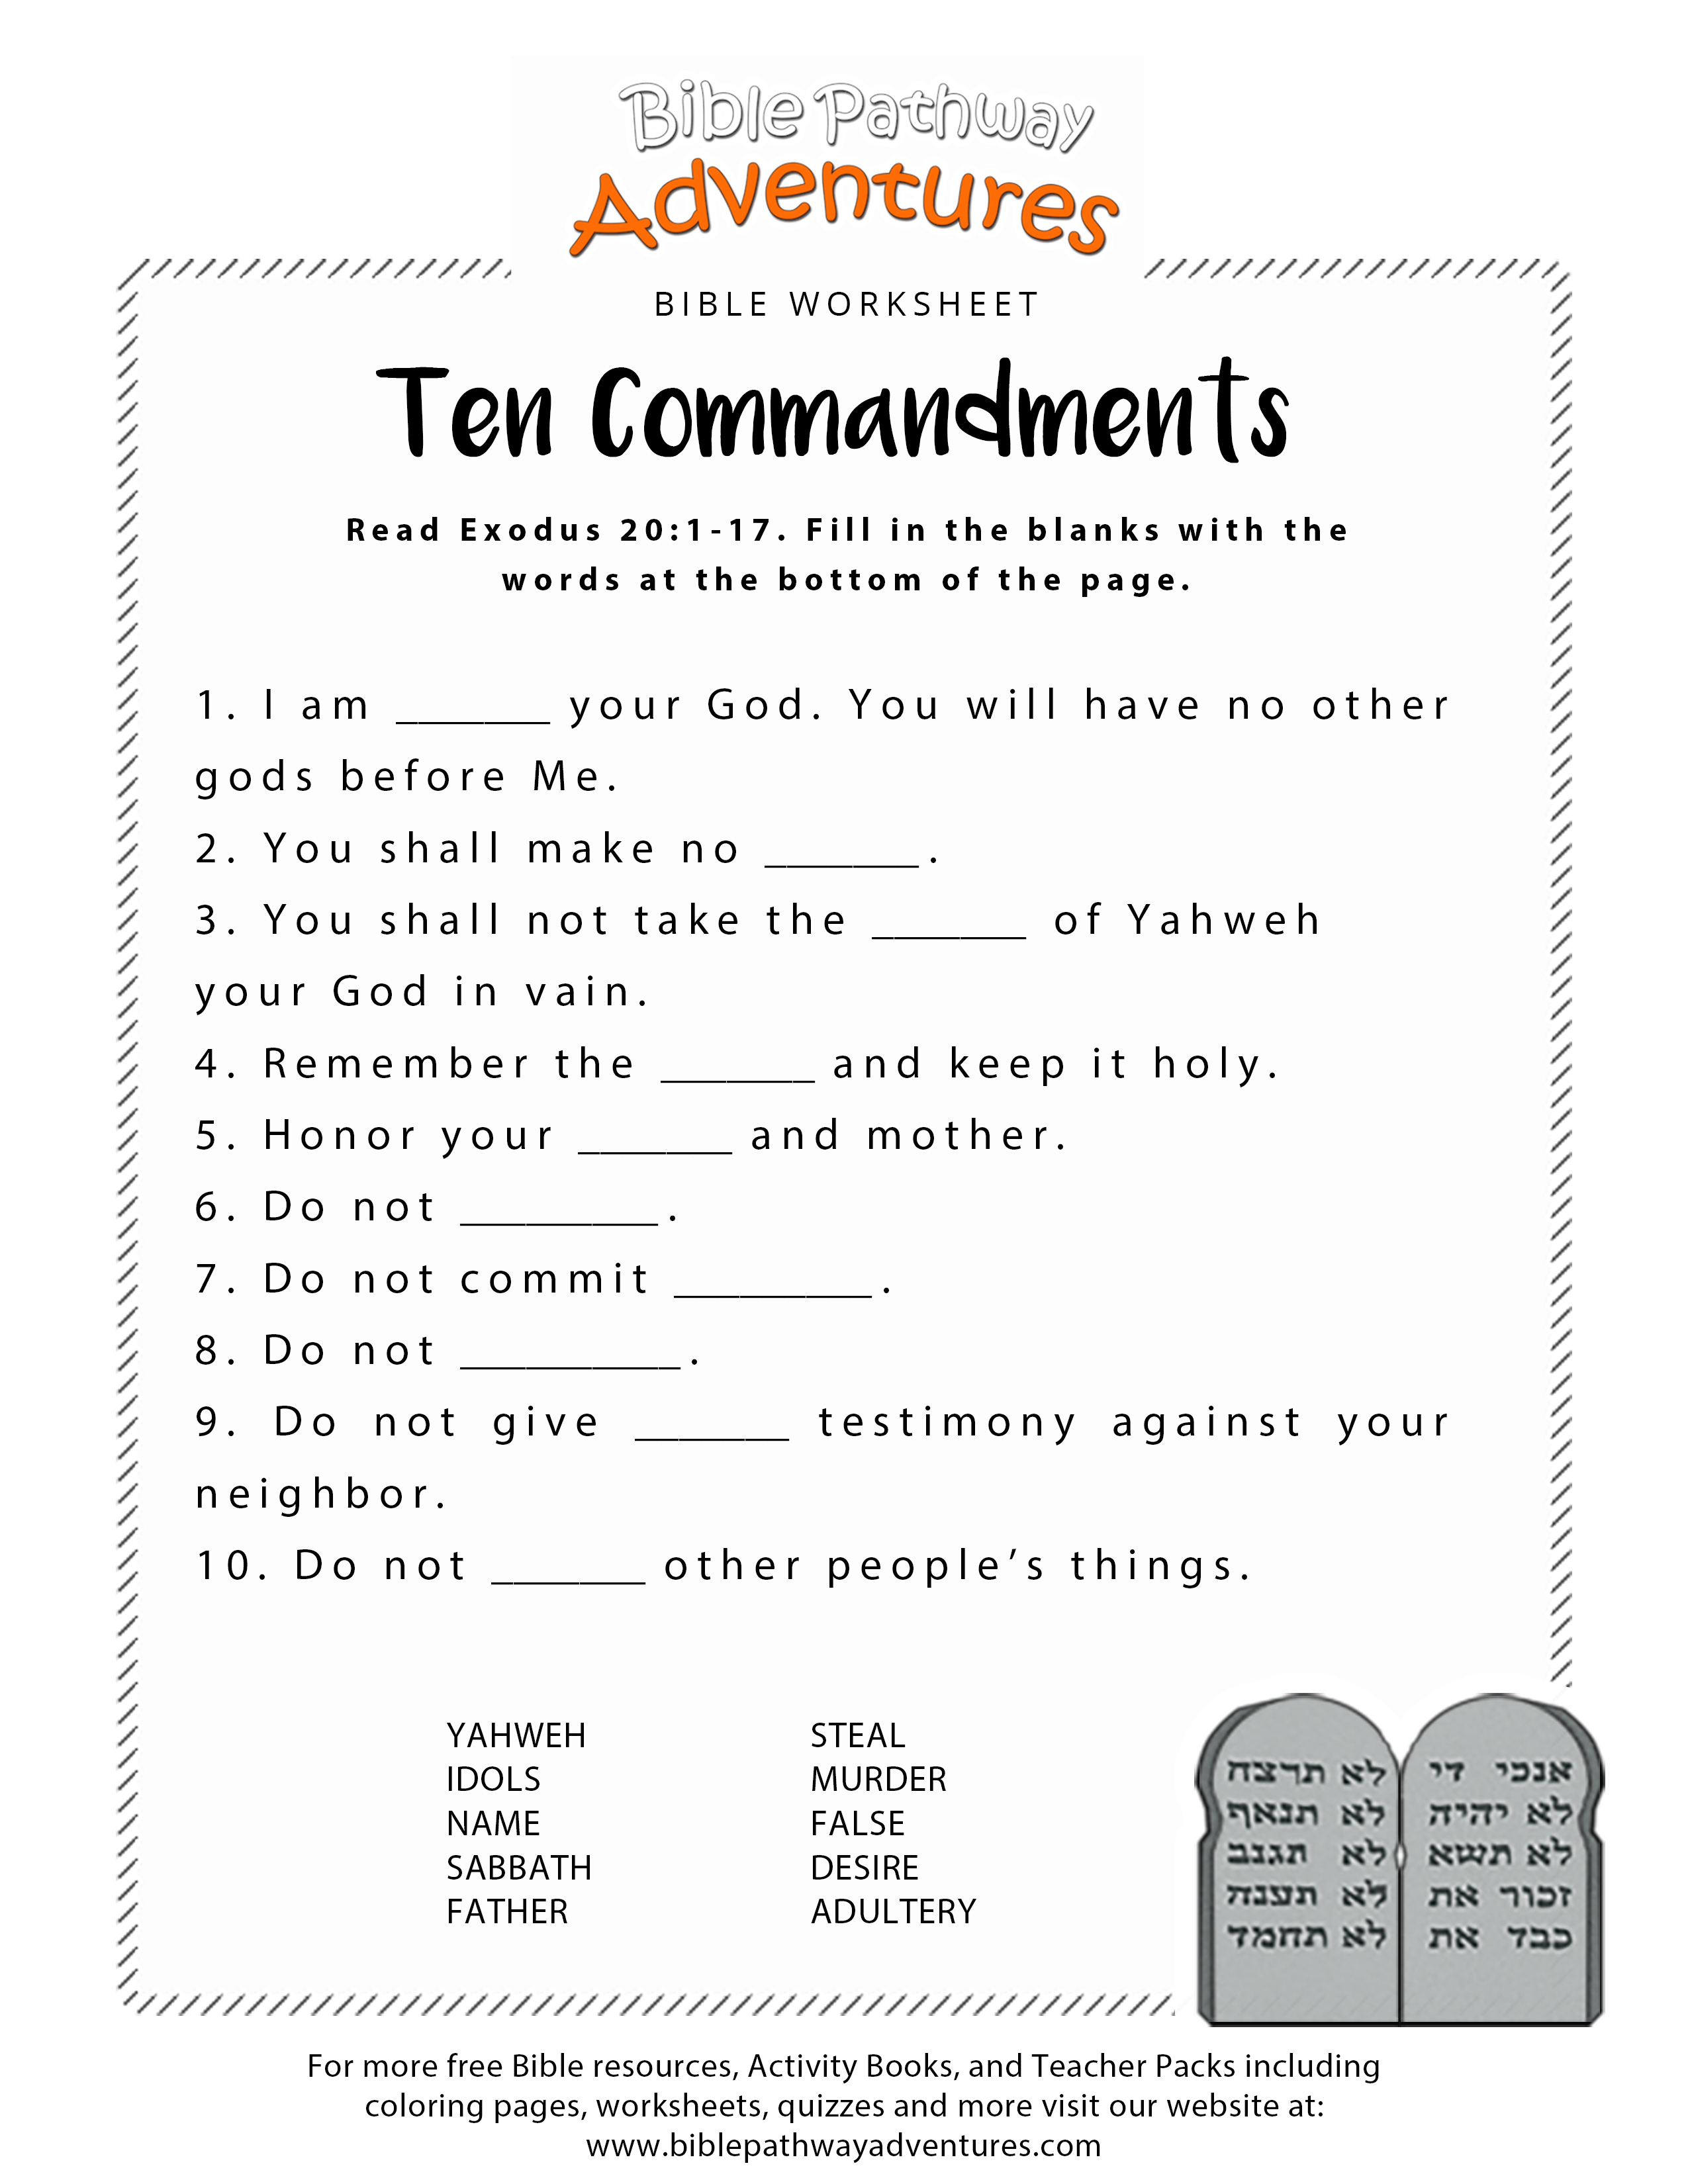 Free Printable Bible Worksheets For Youth – Worksheet Template - Free Printable Sunday School Lessons For Teens